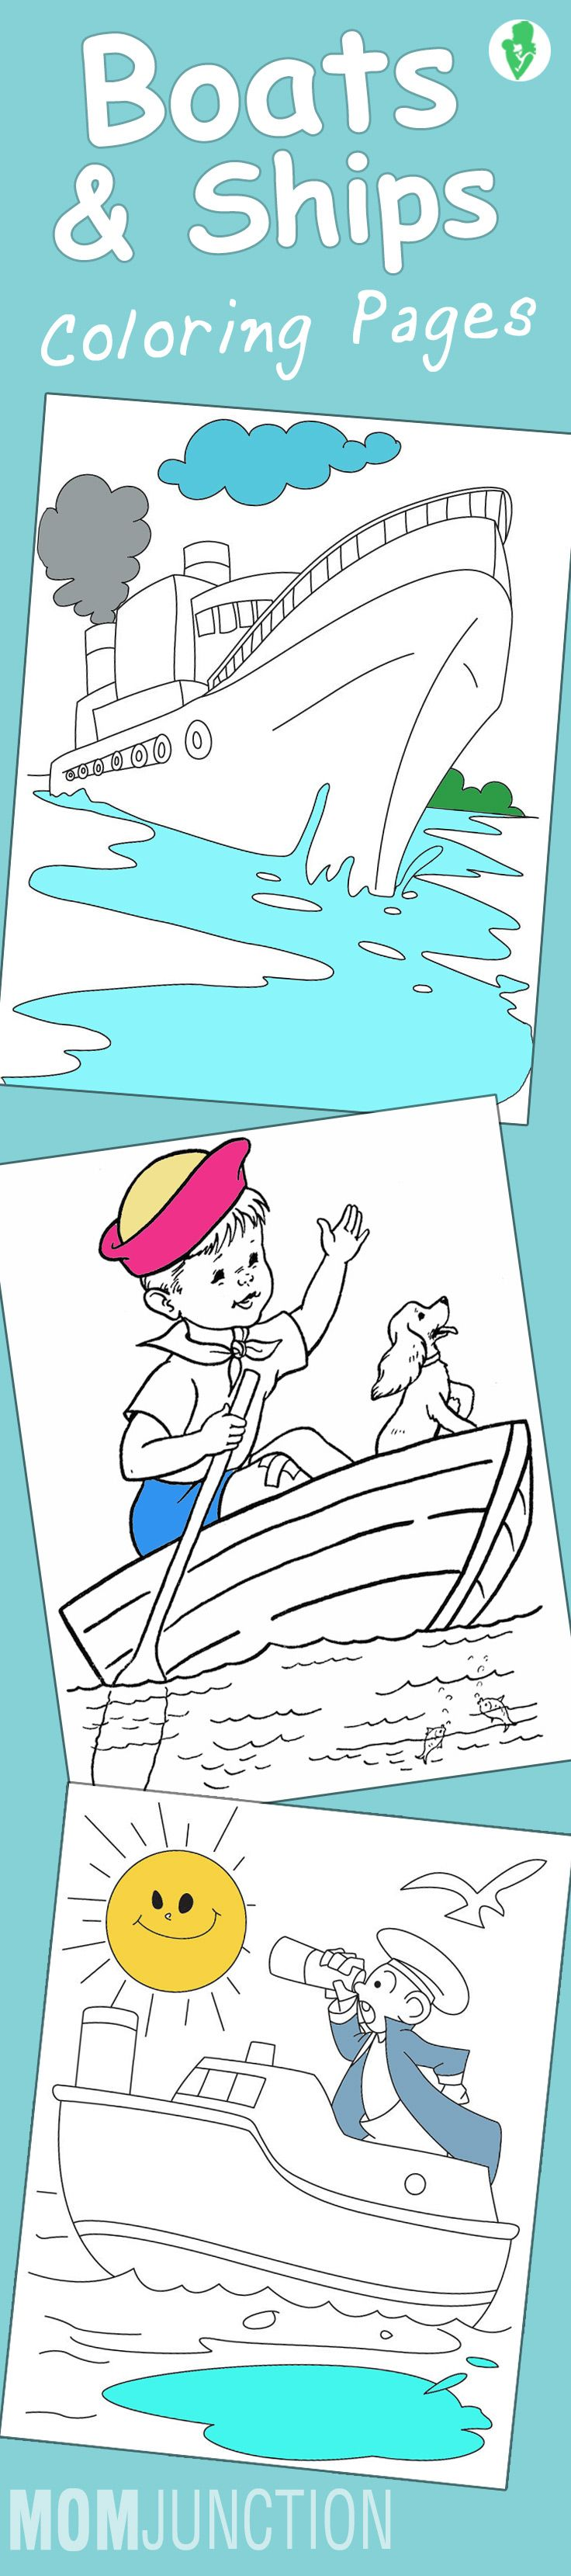 10 Best Boats And Ships Coloring Pages For Your Little Ones: Boats and ships have vast history and can be taught in interesting ways to your kid if he simply takes the initiative of coloring them!